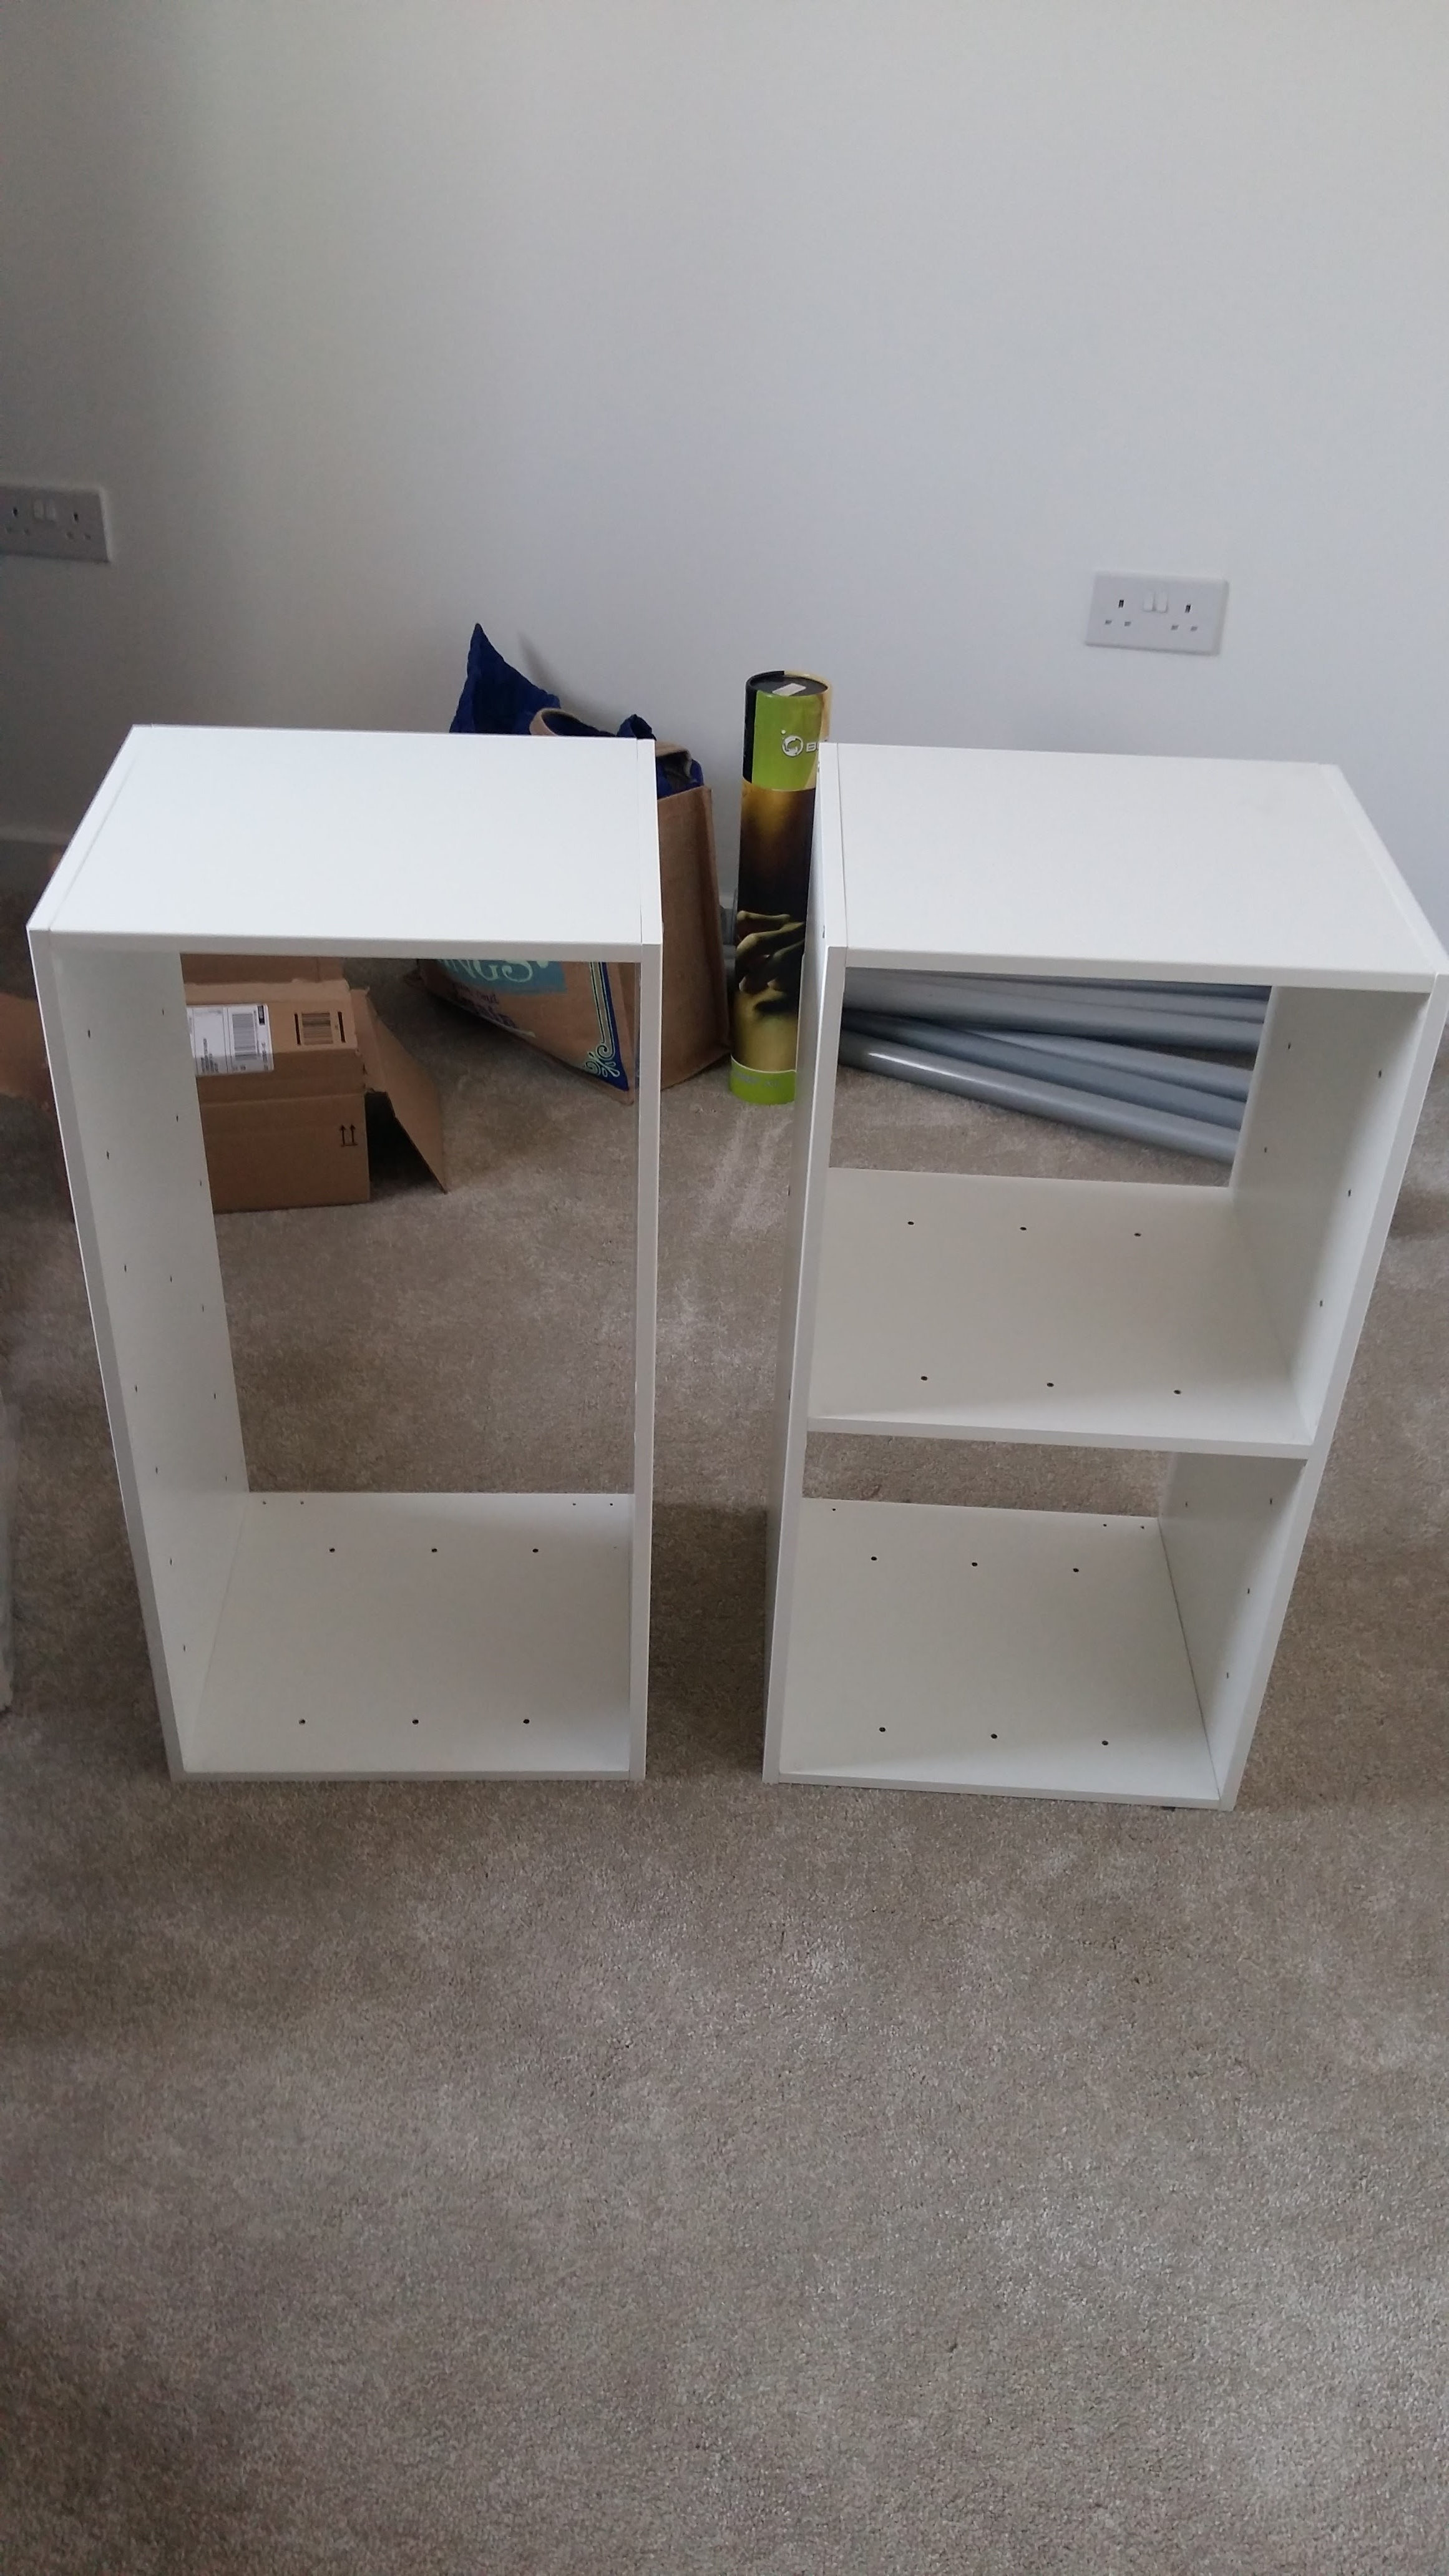 The two built cabinets